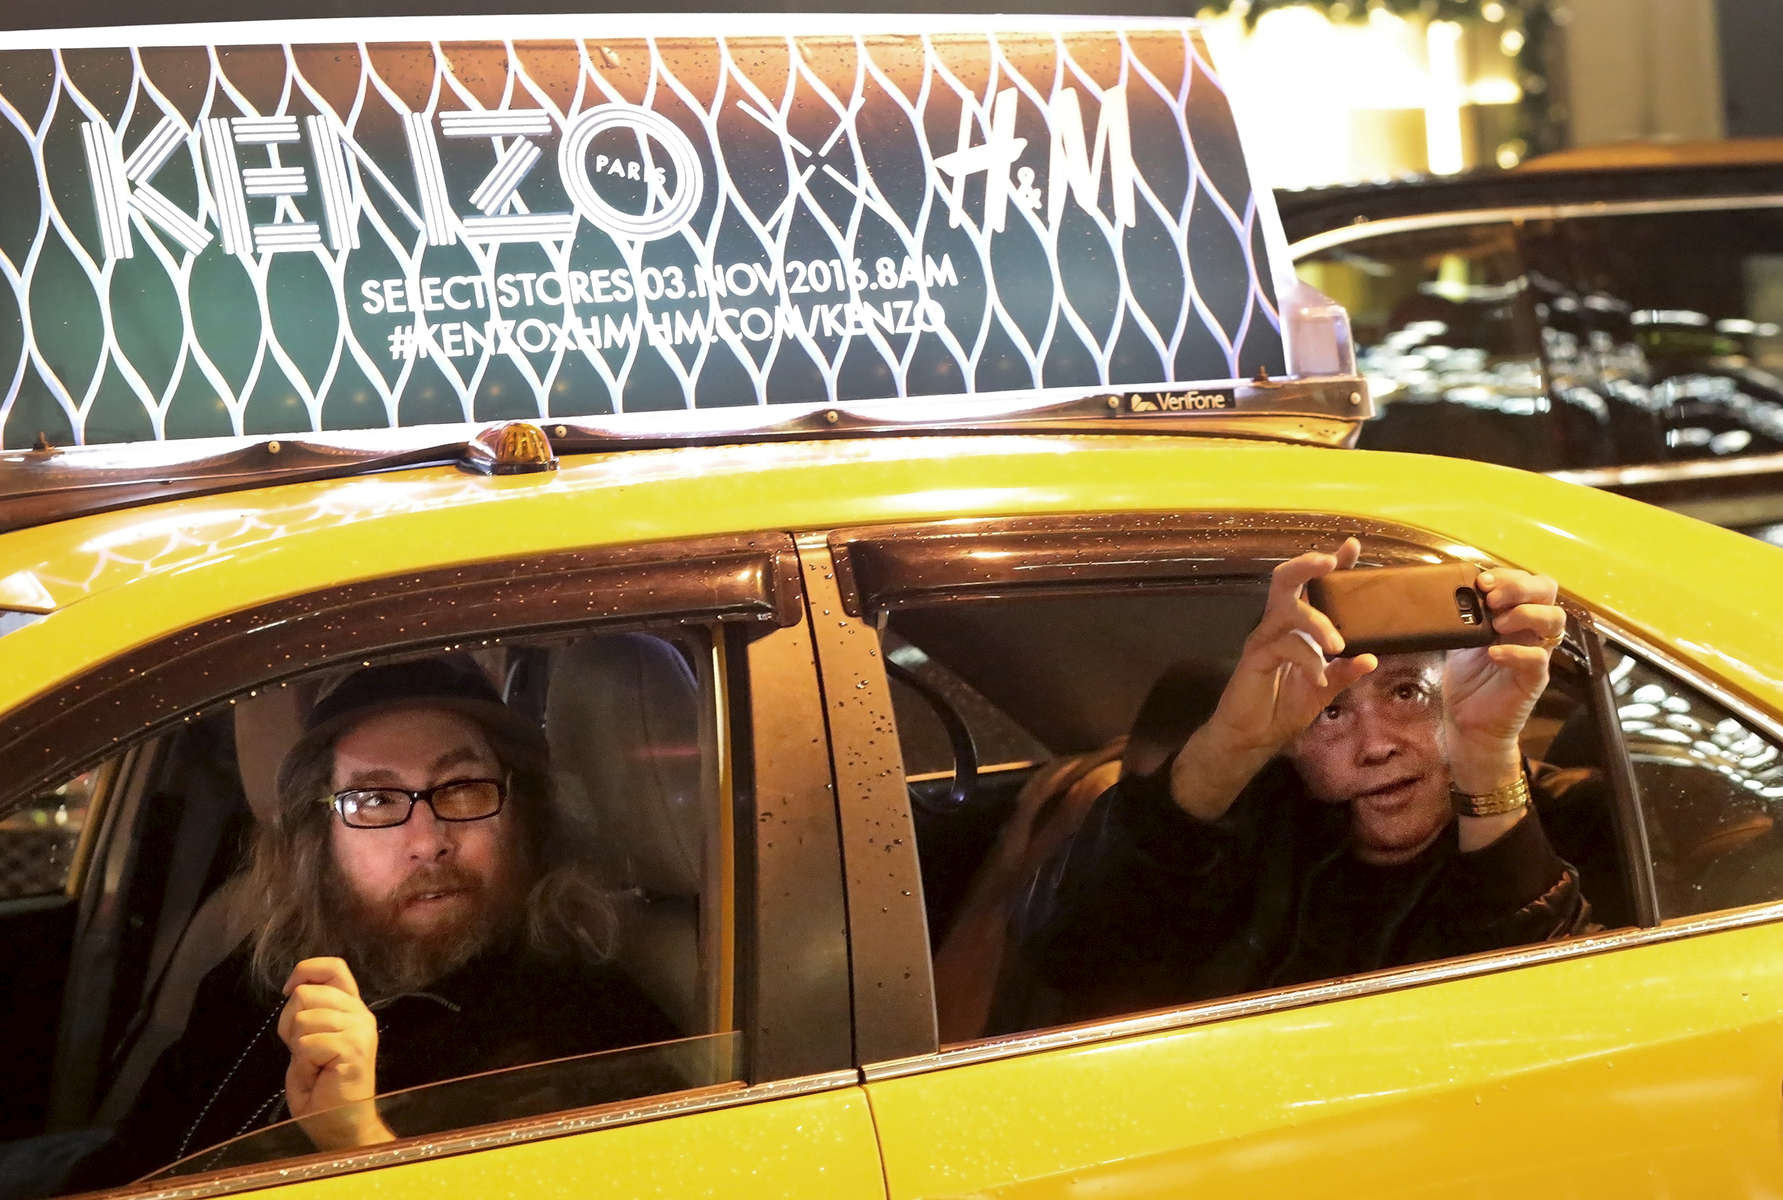 A passerby photographs Trump Tower, the current residence of Republican President elect Donald Trump, from a cab in New York, NY on November 25, 2016.-{quote}Trump Gawkers{quote} is a visceral look at what draws people to Trump Tower, through in-depth interviews and still photos - a project I started the day after the election. At first, I simply followed where my assignments sent me, but then found myself returning to the place on my own, unable to look away - and I wasn't alone. Hoards of people undertake the trek, bearing security and weather roadblocks, to stare, gawk, absorb, record. The magnetism to Trump Tower (and by extension, to the man in the tower,) manifests in the sheer numbers of daily visitors, as well as in the fascination etched across their faces. Upon first look, the time so many spend there seems like sport and amusement, but underneath upturned eyes and selfie smiles prevails an undercurrent of anxiety - and not just for those who didn't want Trump in the Oval Office. Some of the electorate that voted against Hillary is now unsure for which version of Trump they voted. People's upward gazes, no matter their political views, seek answers: How could this happen? Or now that it has, what will it mean?